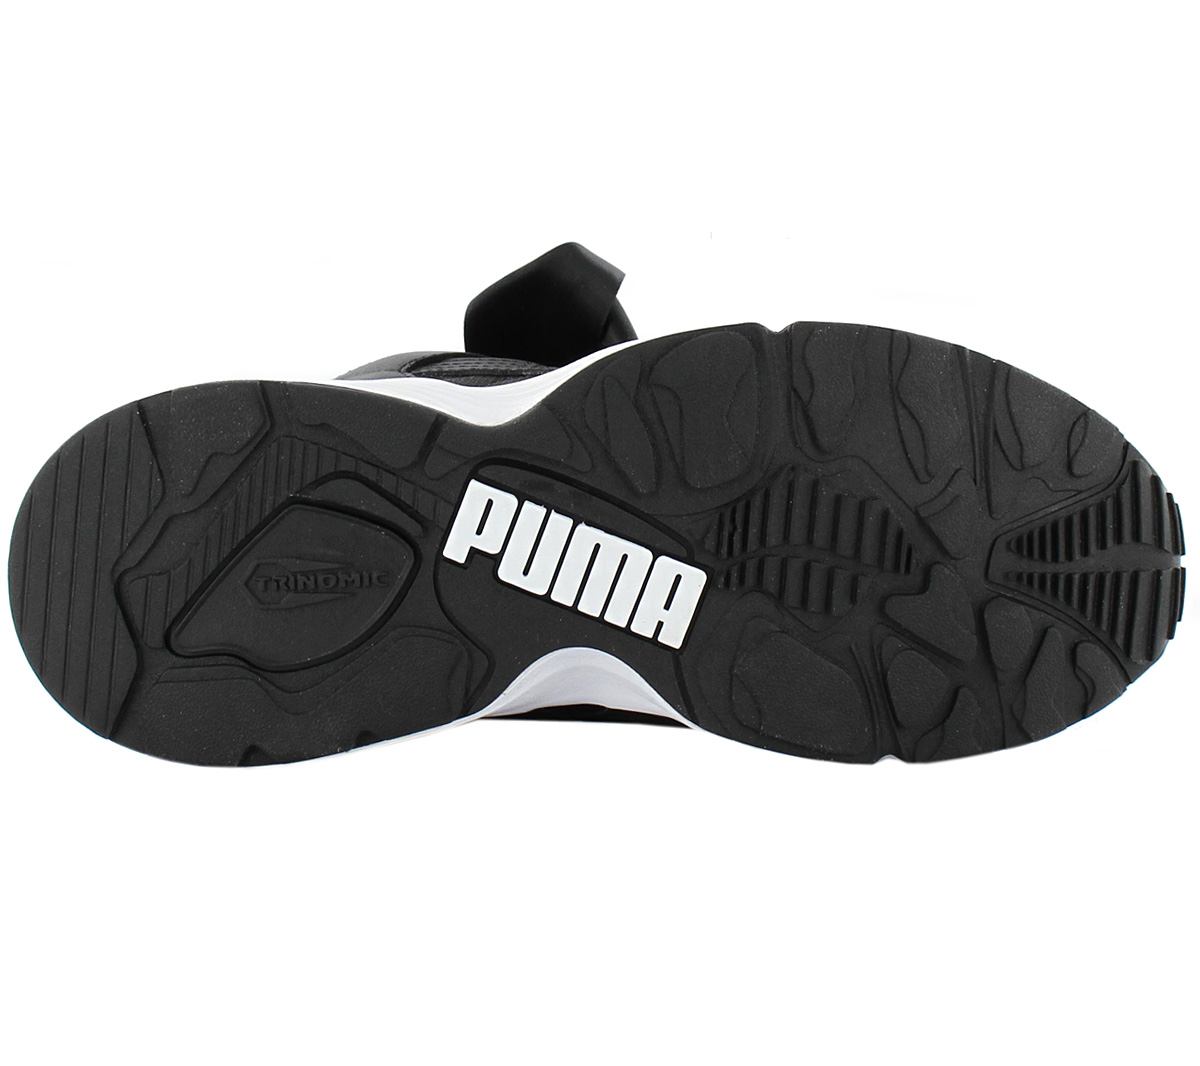 online retailer bb42c 4bc7b Details about NEW Puma Trinomic Prevail Heart Wns 365649-01 Women`s Shoes  Trainers Sneakers SA